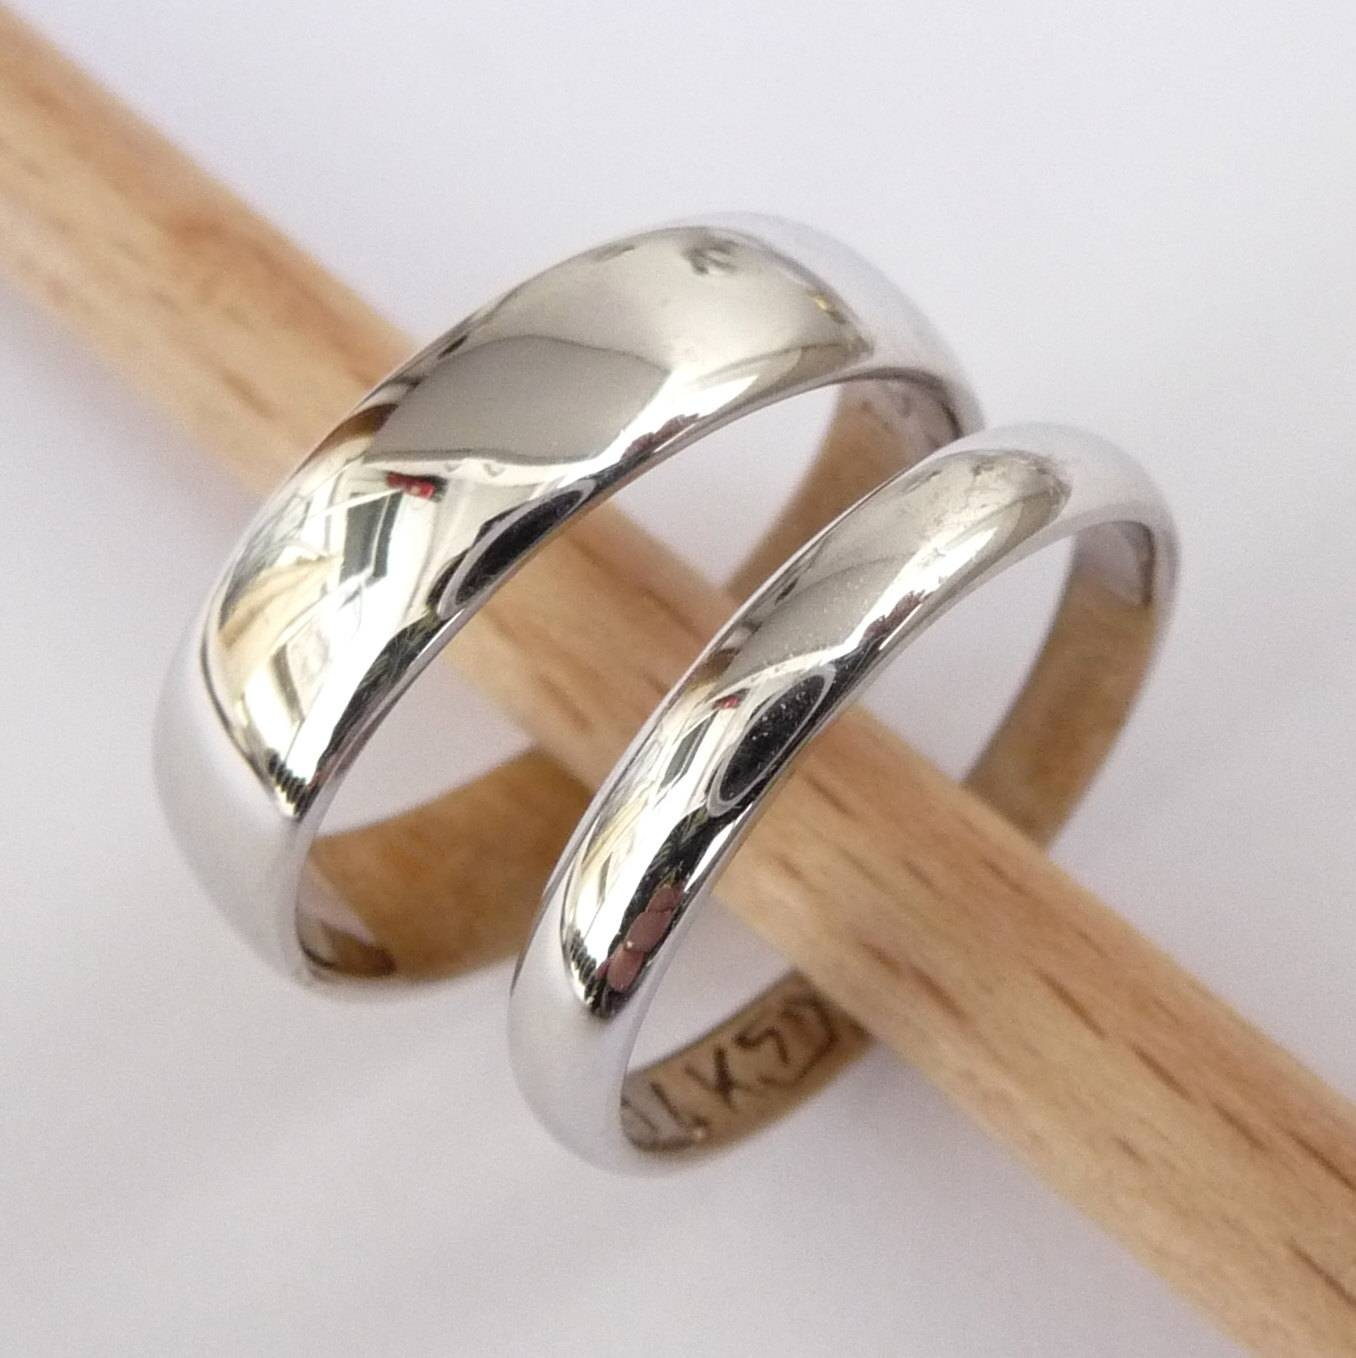 38 Wedding Rings Sets Women, Gallery Of Why Should Make Wedding With Men And Women Wedding Bands Sets (Gallery 4 of 15)